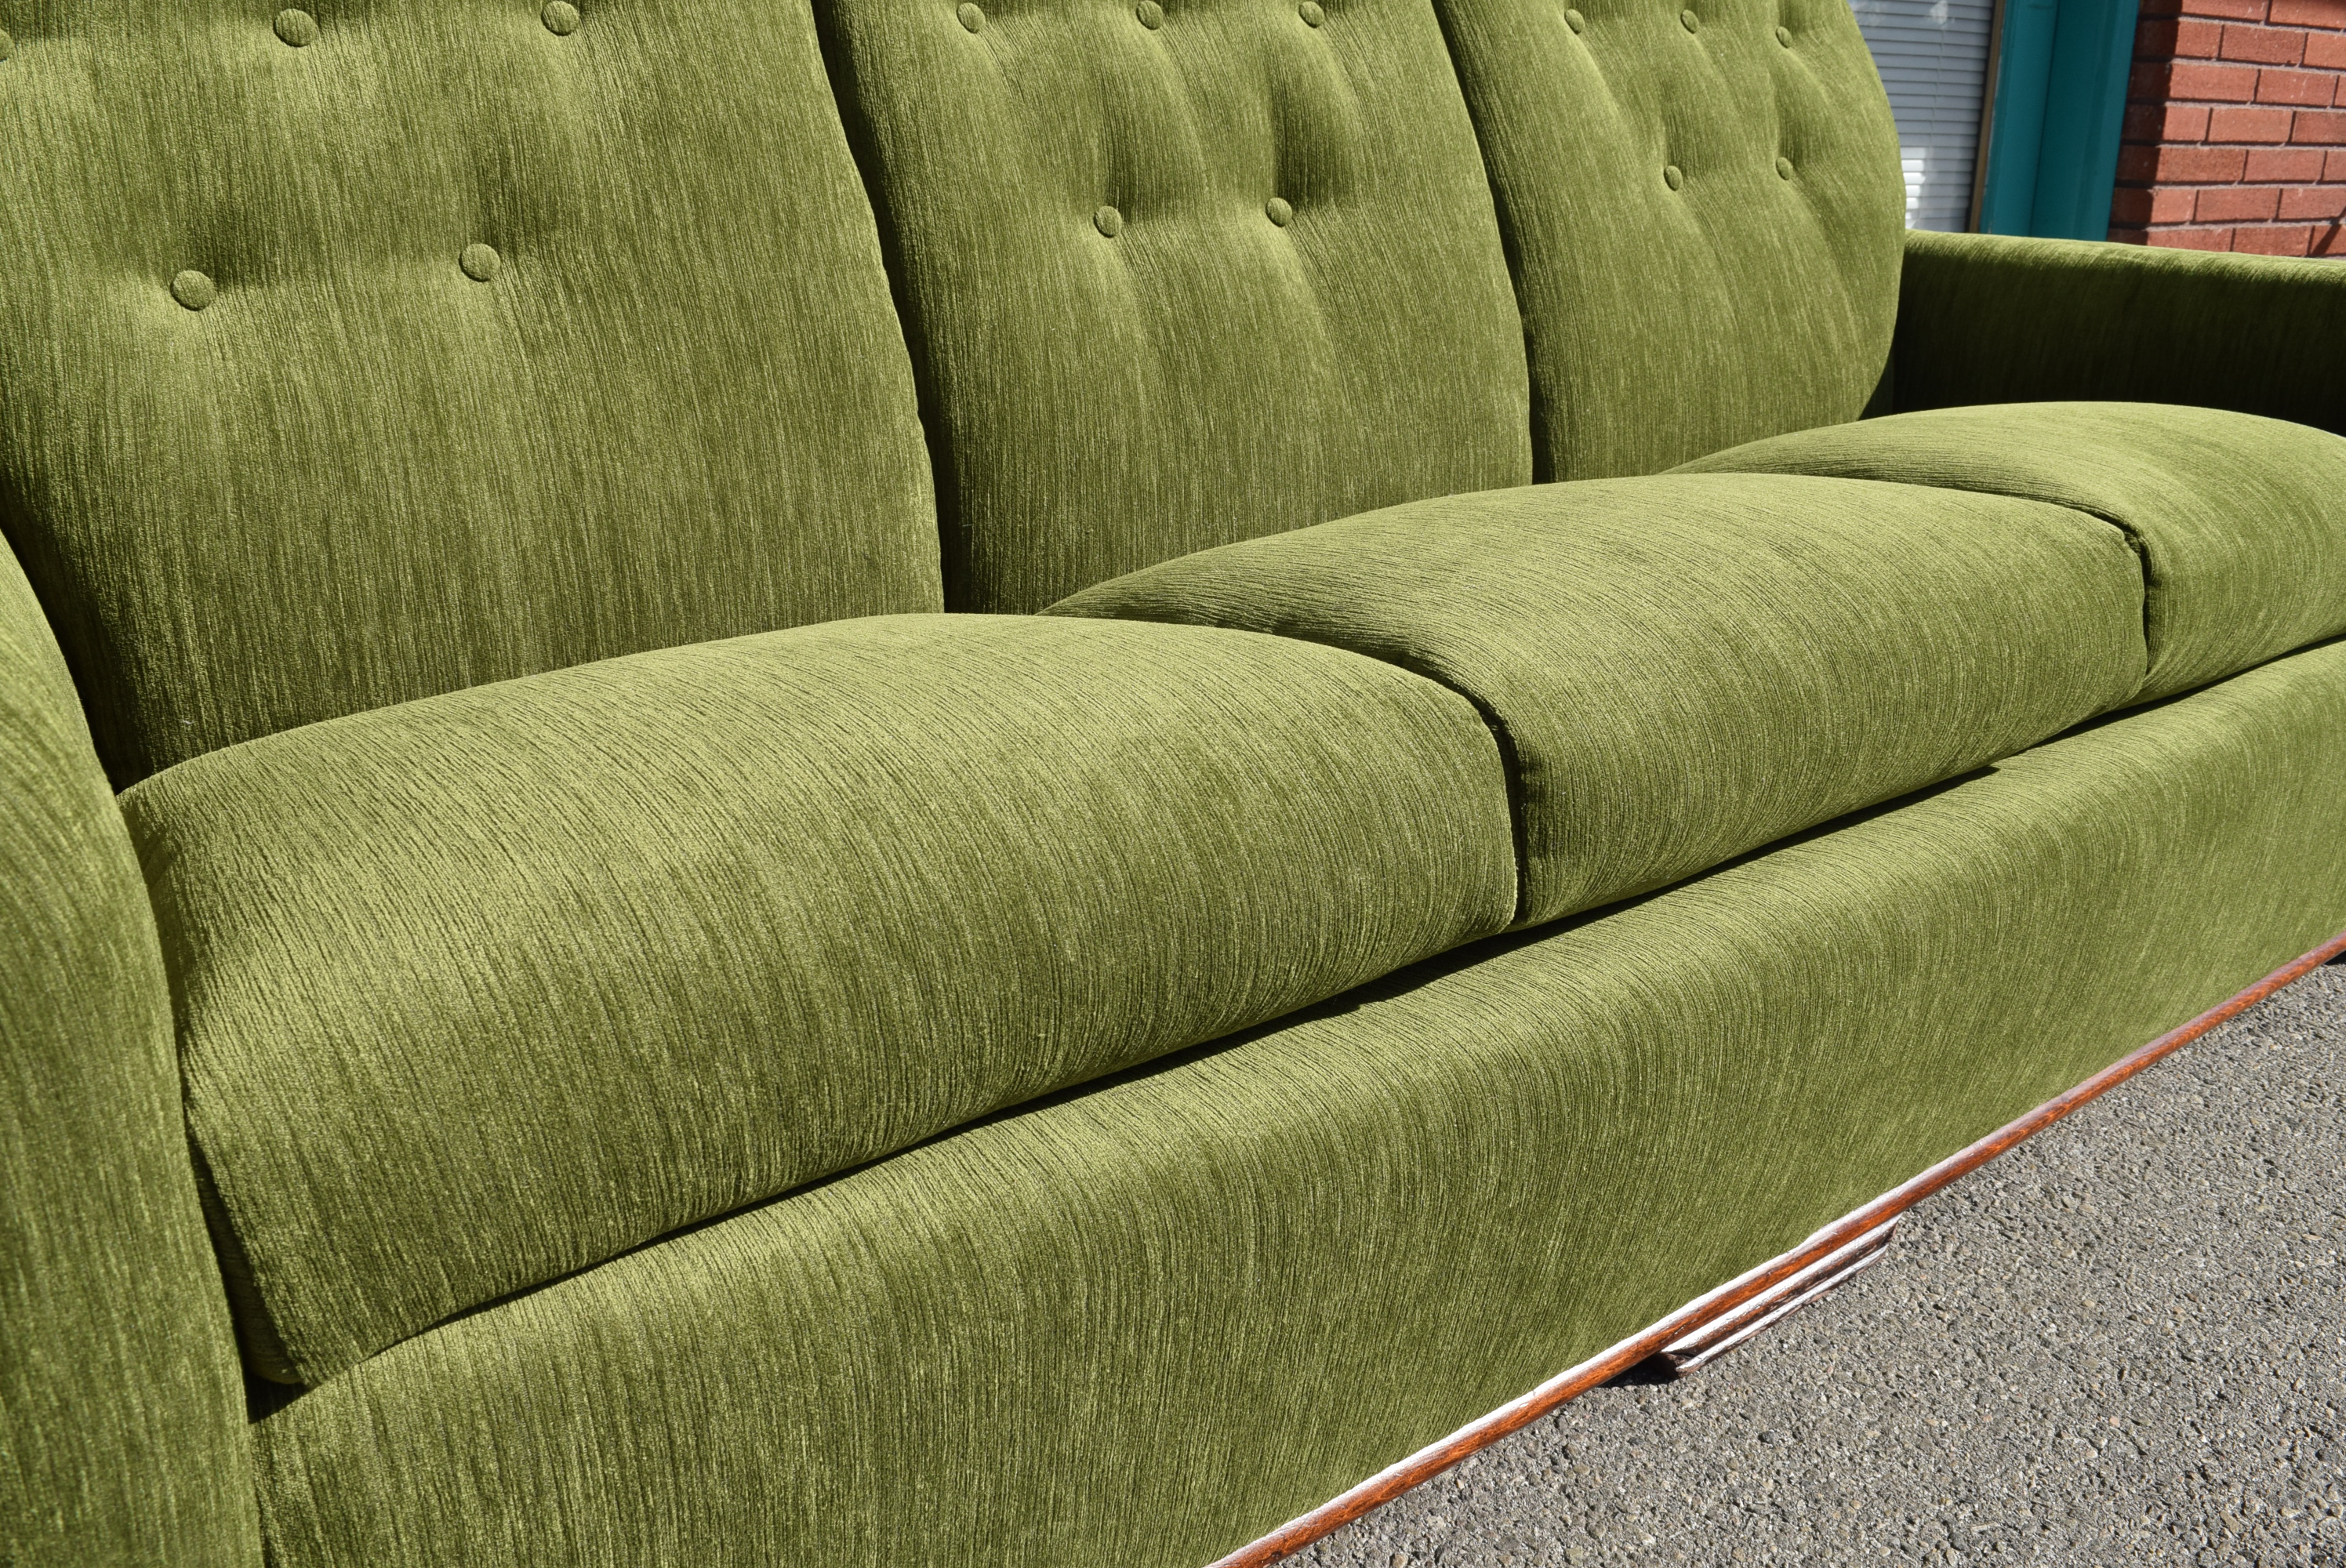 Vintage Art Deco Modern Green Velvet Sofa U0026 Chair   A Pair   Image 7 Of